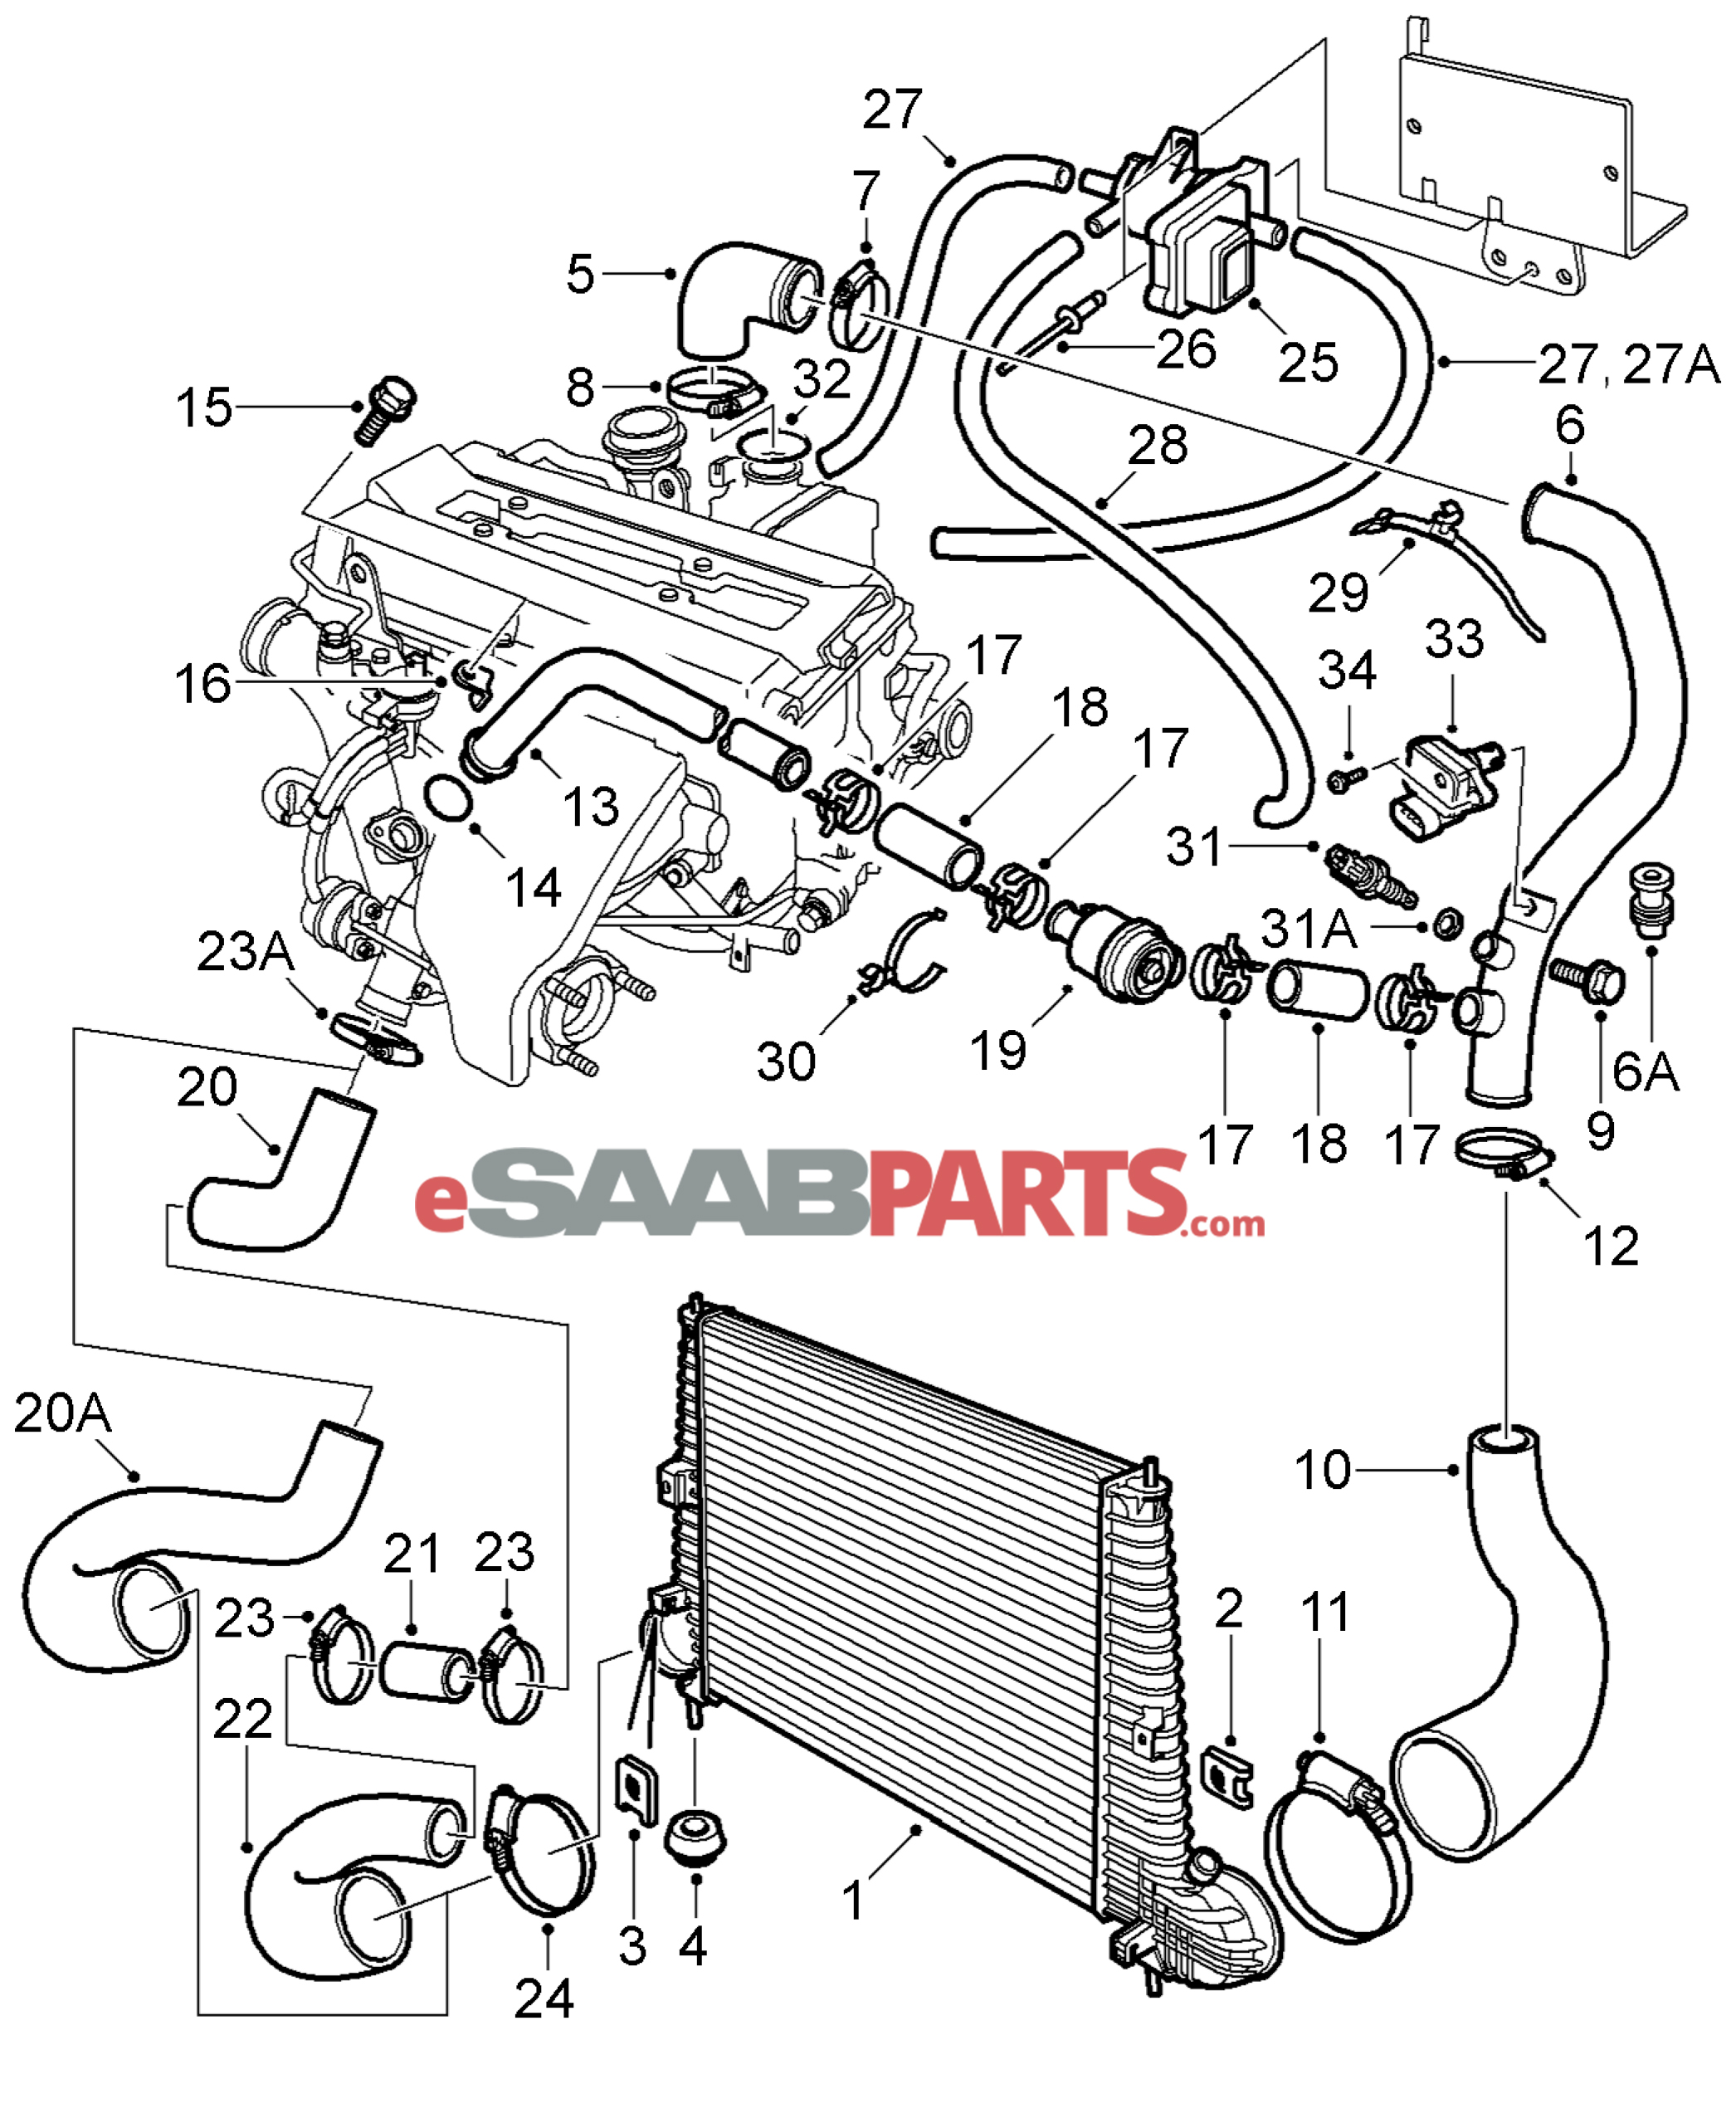 saab 9 3 engine diagram auto electrical wiring diagram. Black Bedroom Furniture Sets. Home Design Ideas